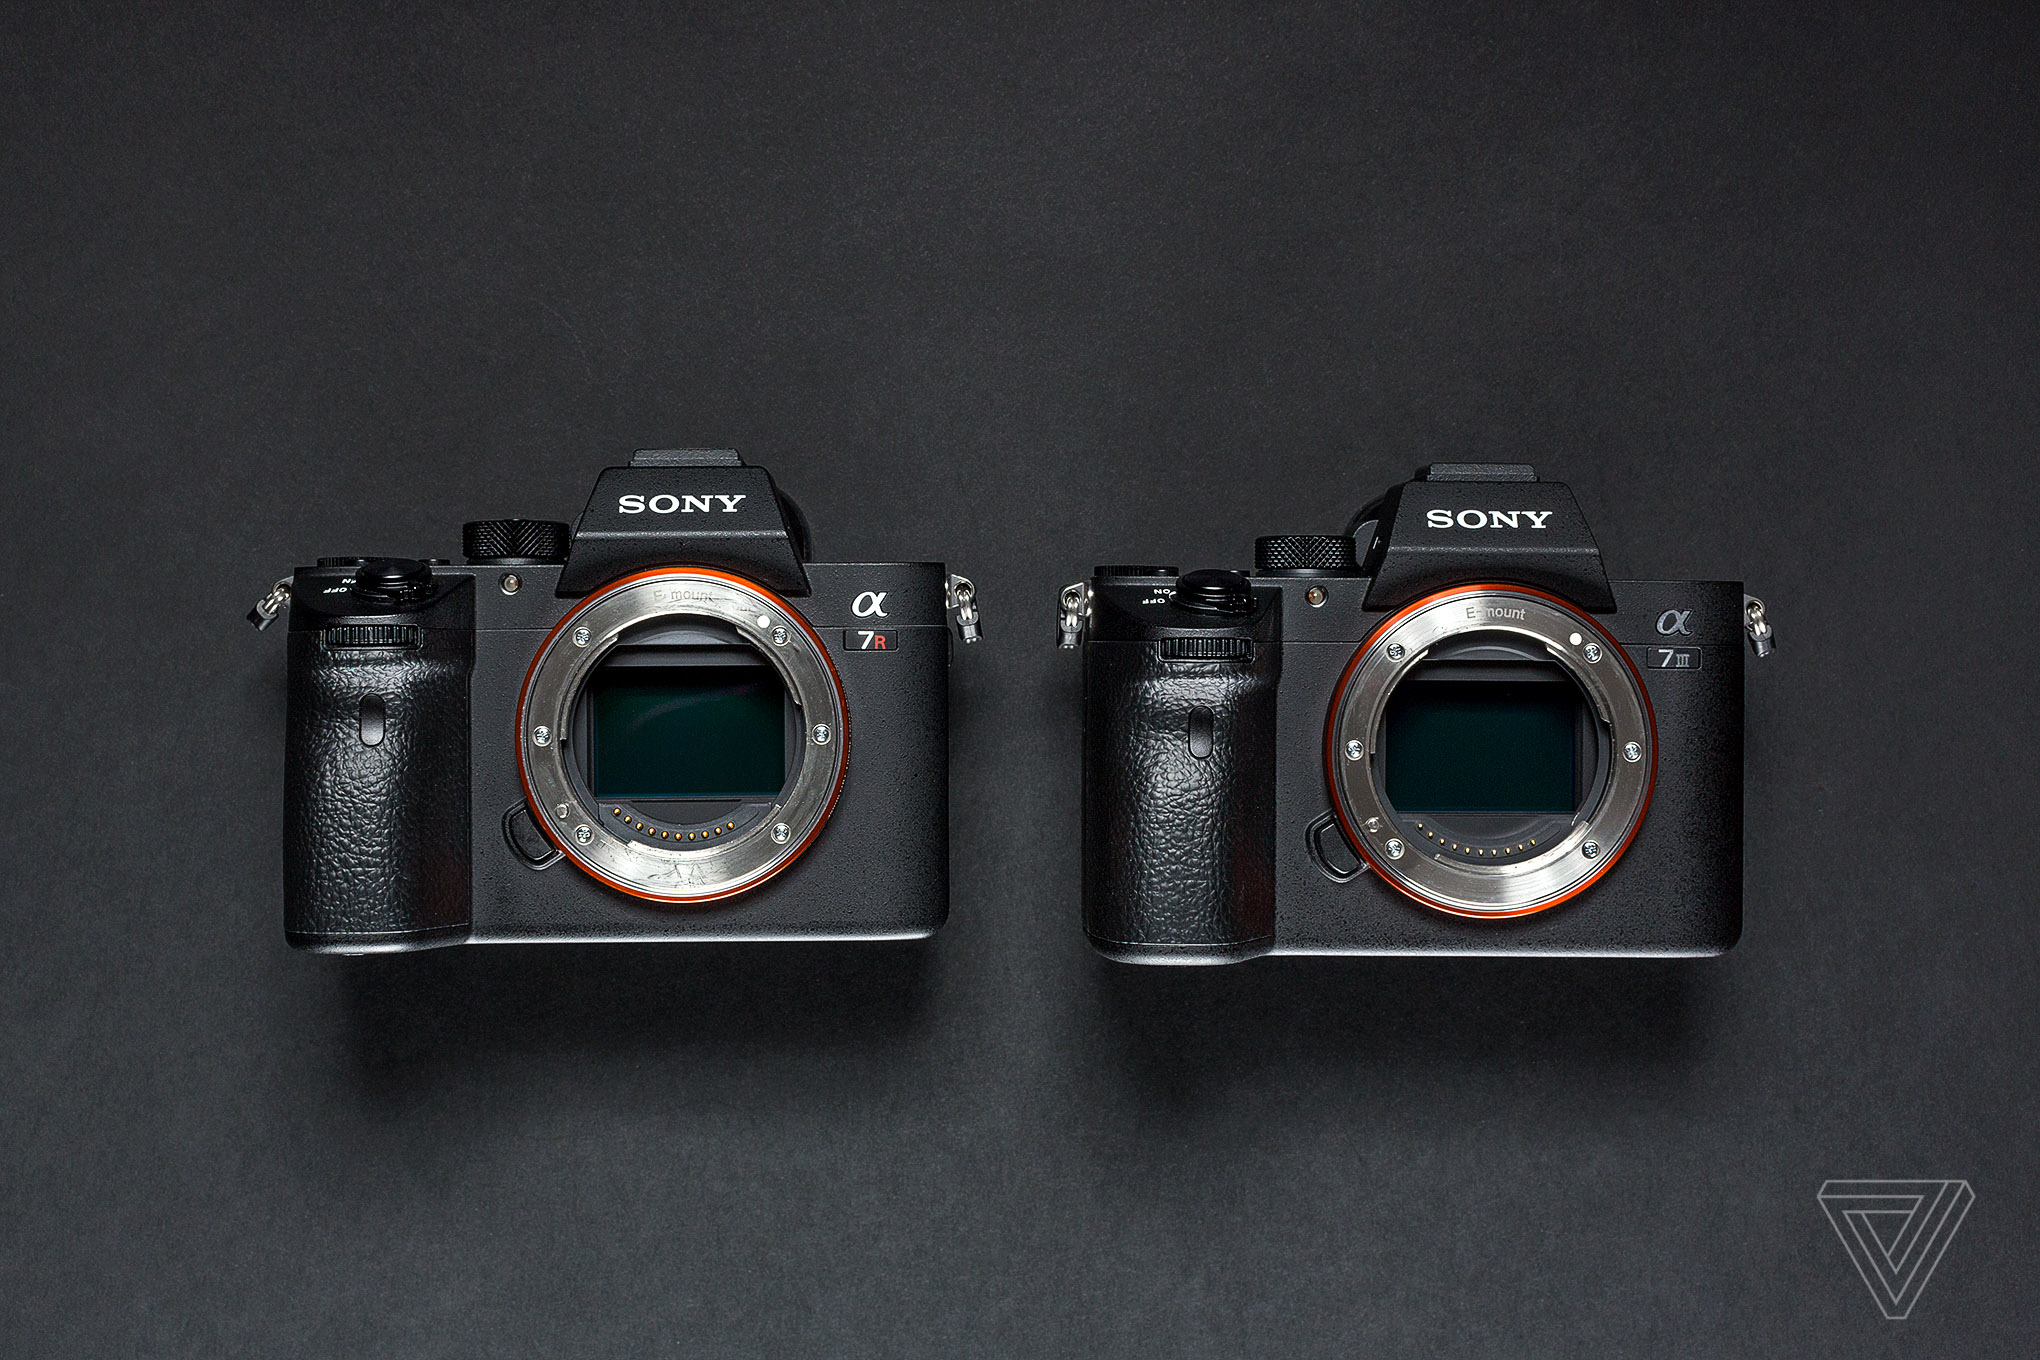 Sony A7 III and A7R III review: mirrorless magic